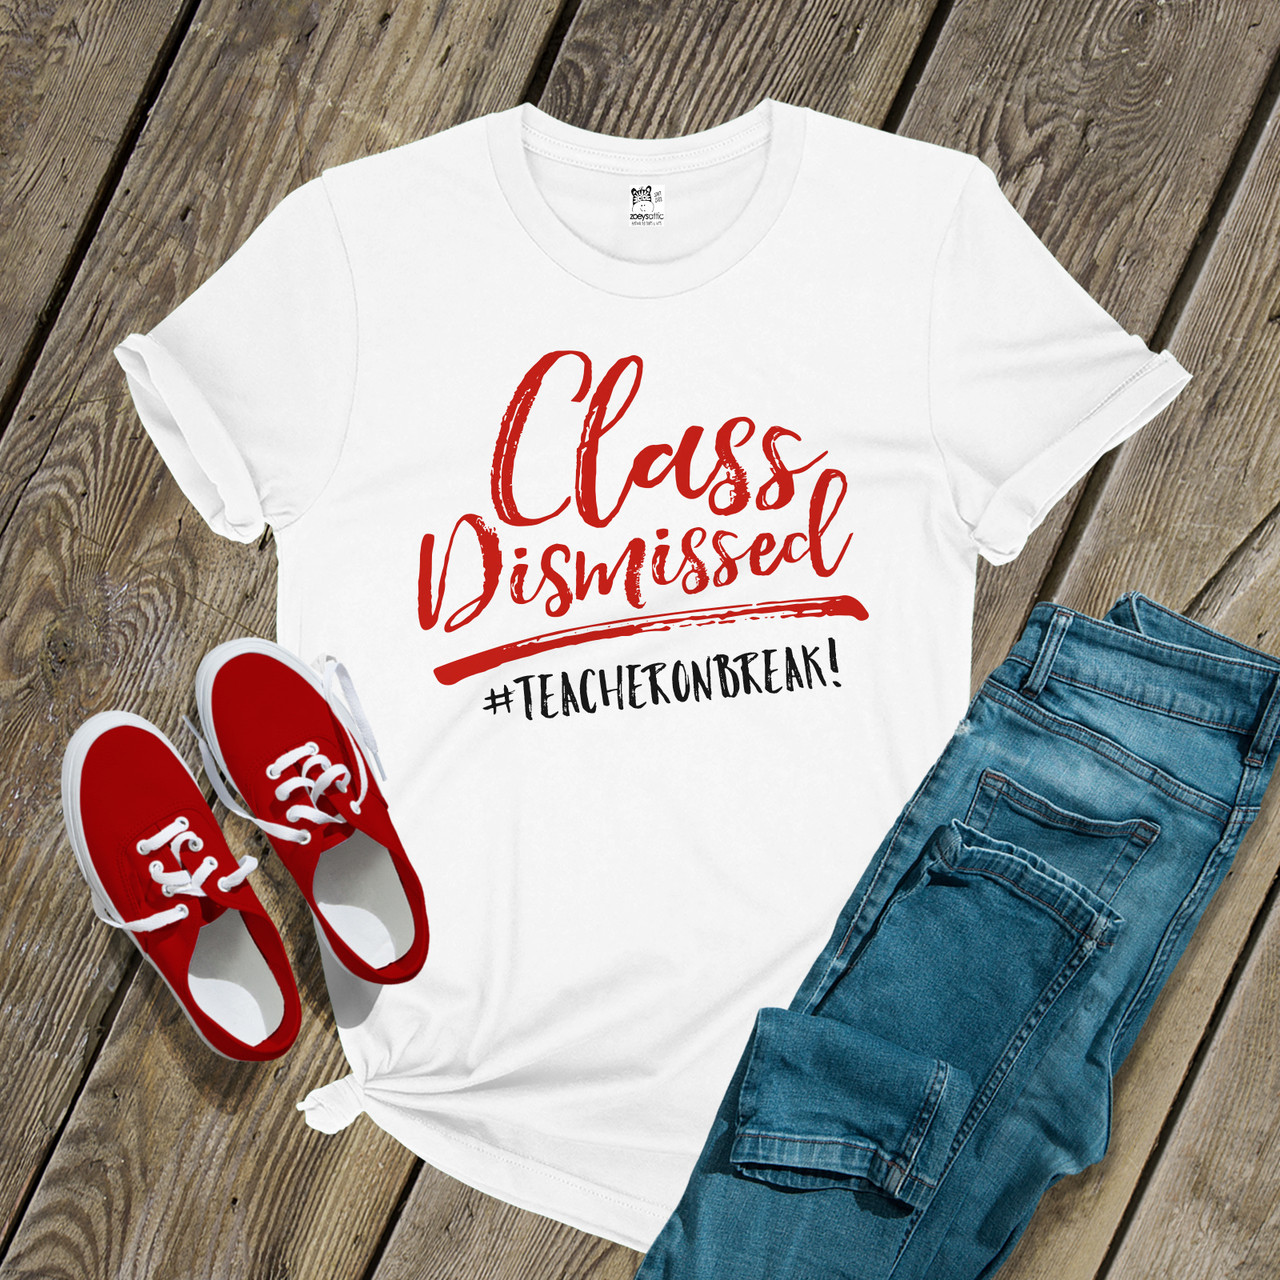 7e96232f2 teacher shirt, #teacheronbreak class dismissed tshirt gift